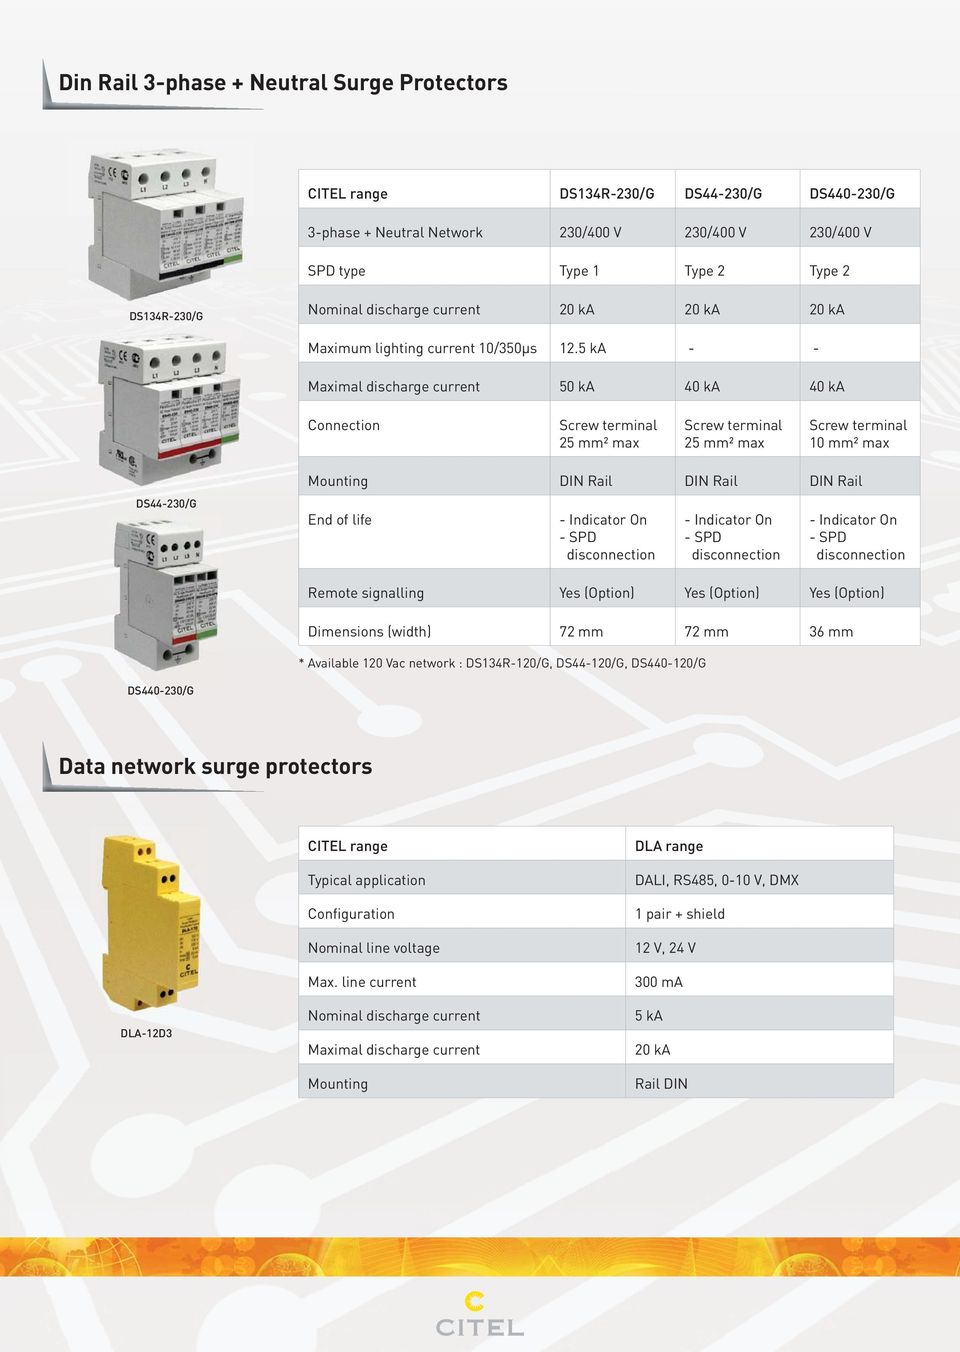 5 ka - - Maximal discharge current 50 ka 40 ka 40 ka Connection 25 mm² max 25 mm² max 10 mm² max DS44-230/G Mounting DIN Rail DIN Rail DIN Rail Remote signalling Yes (Option) Yes (Option) Yes